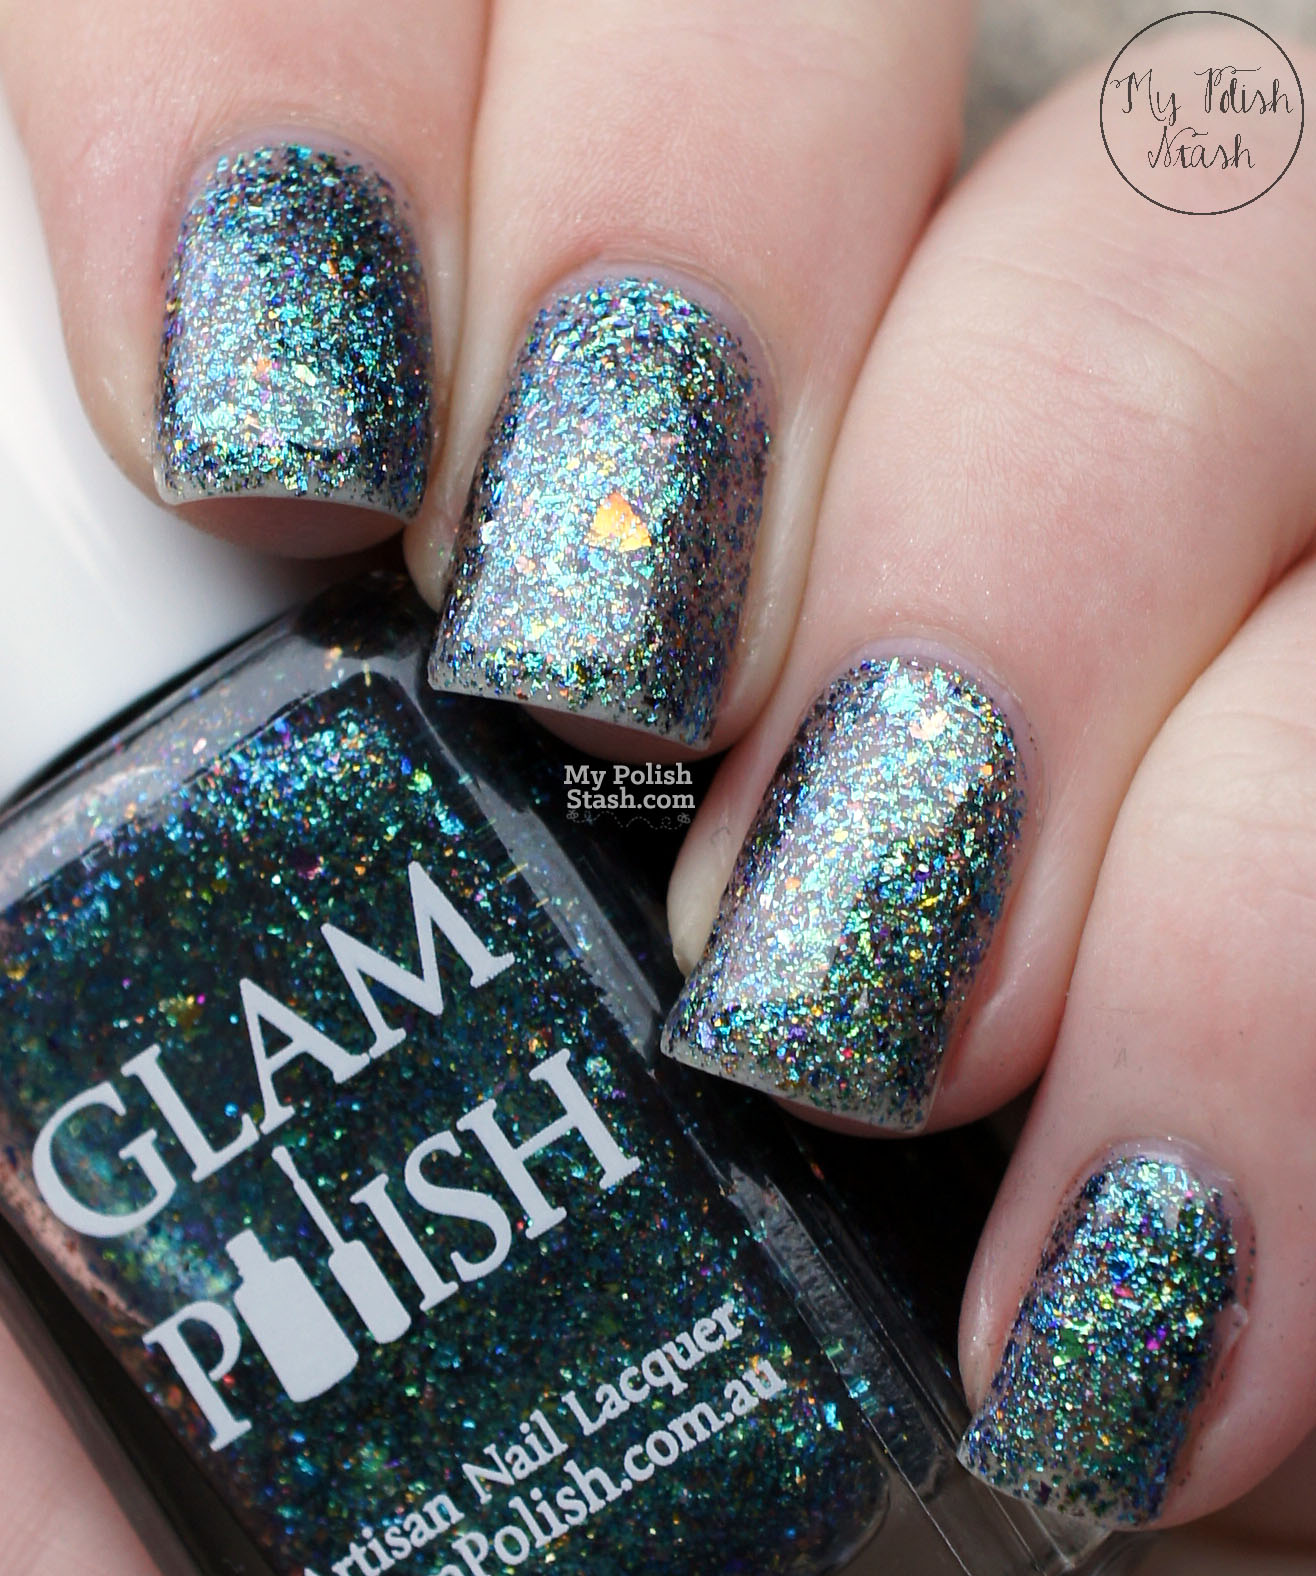 Glam-polish-star-shadow-2